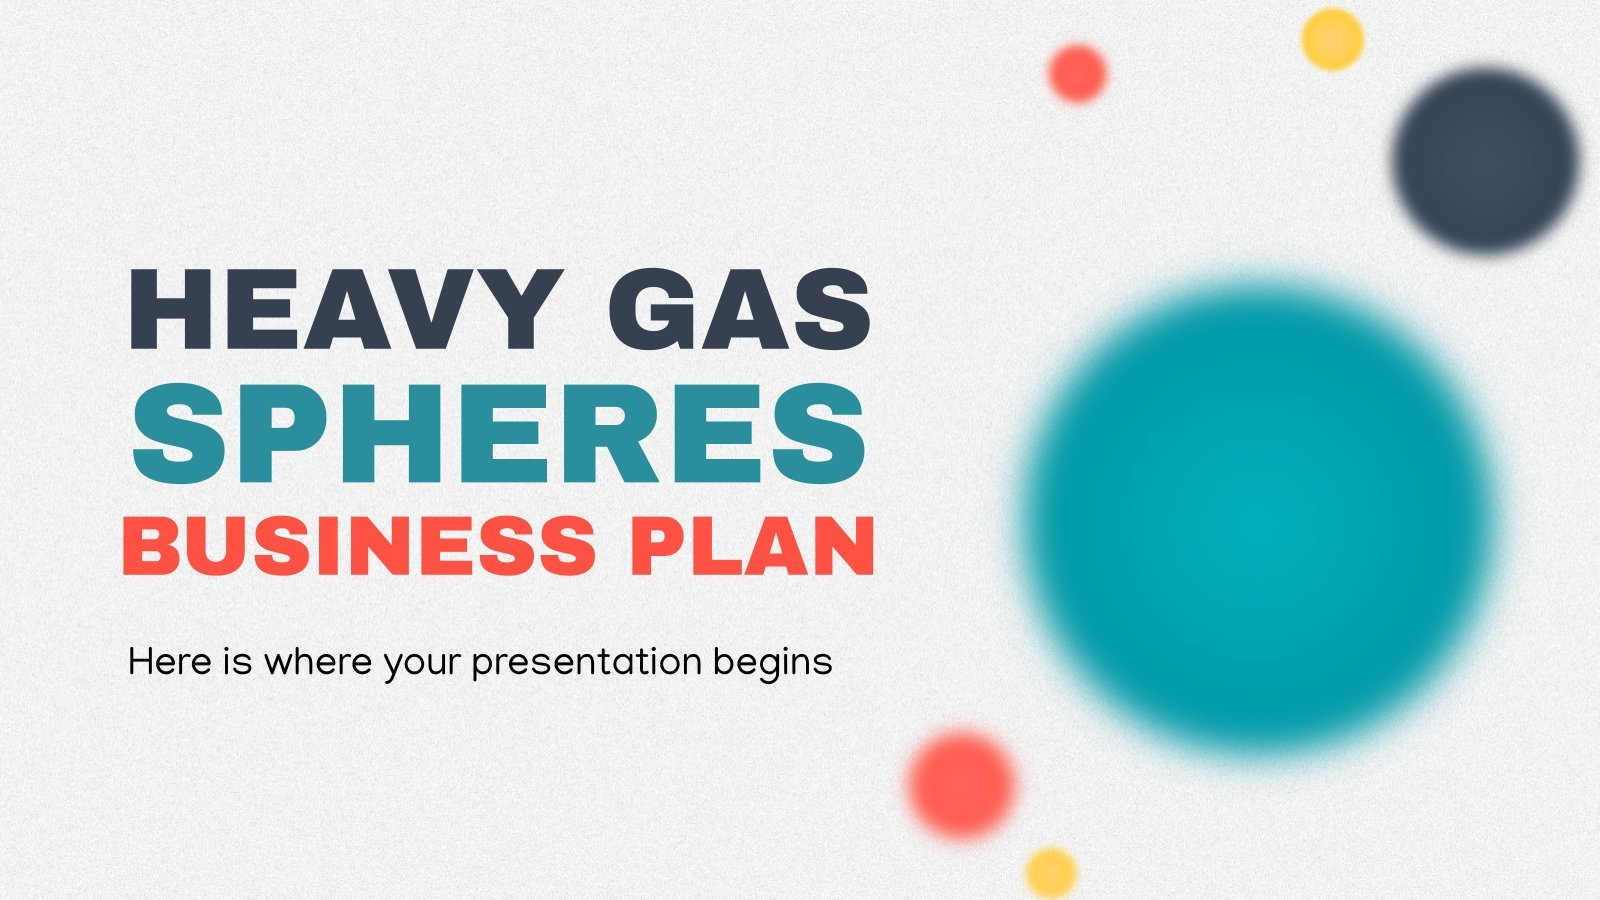 Heavy Gas Spheres Business Plan presentation template